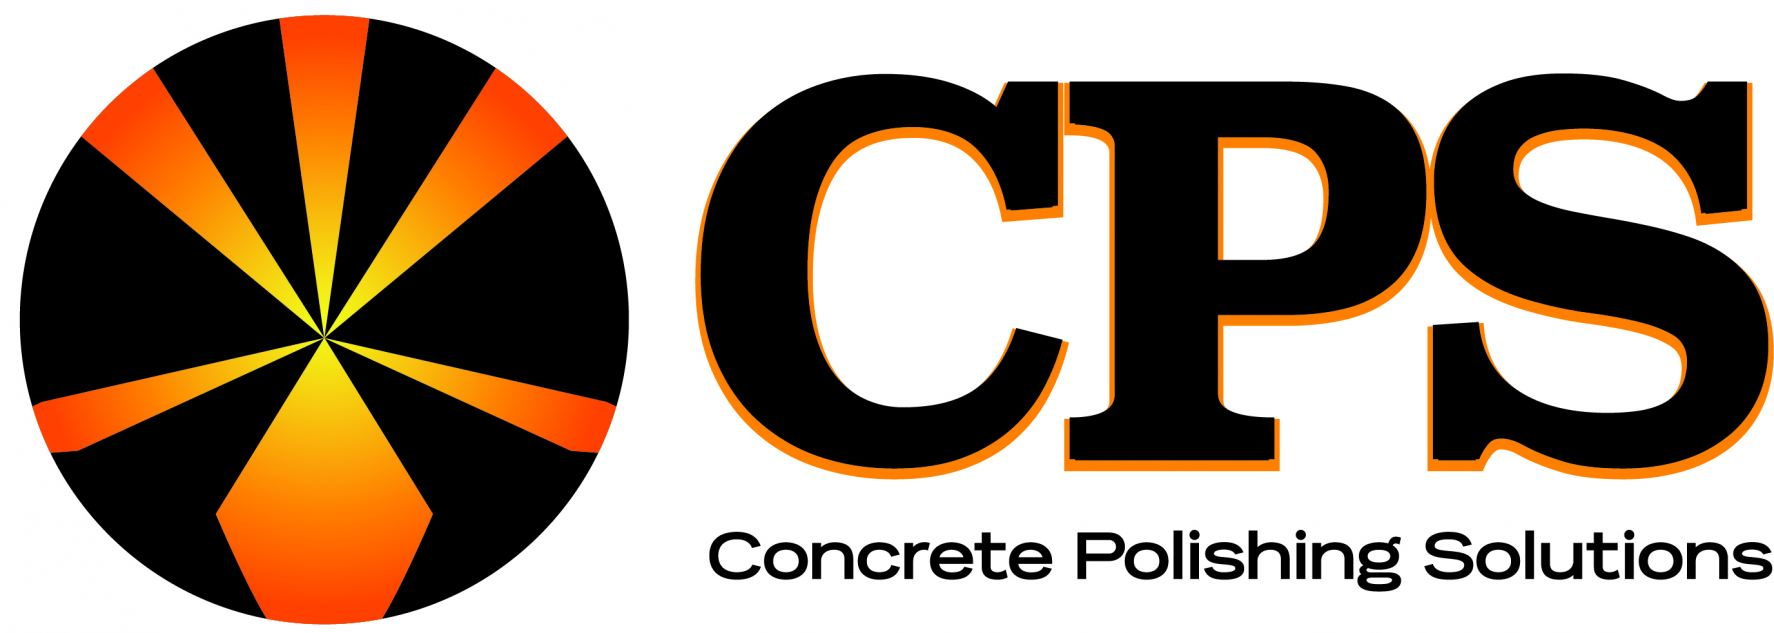 Concrete Polishing Solutions Logo